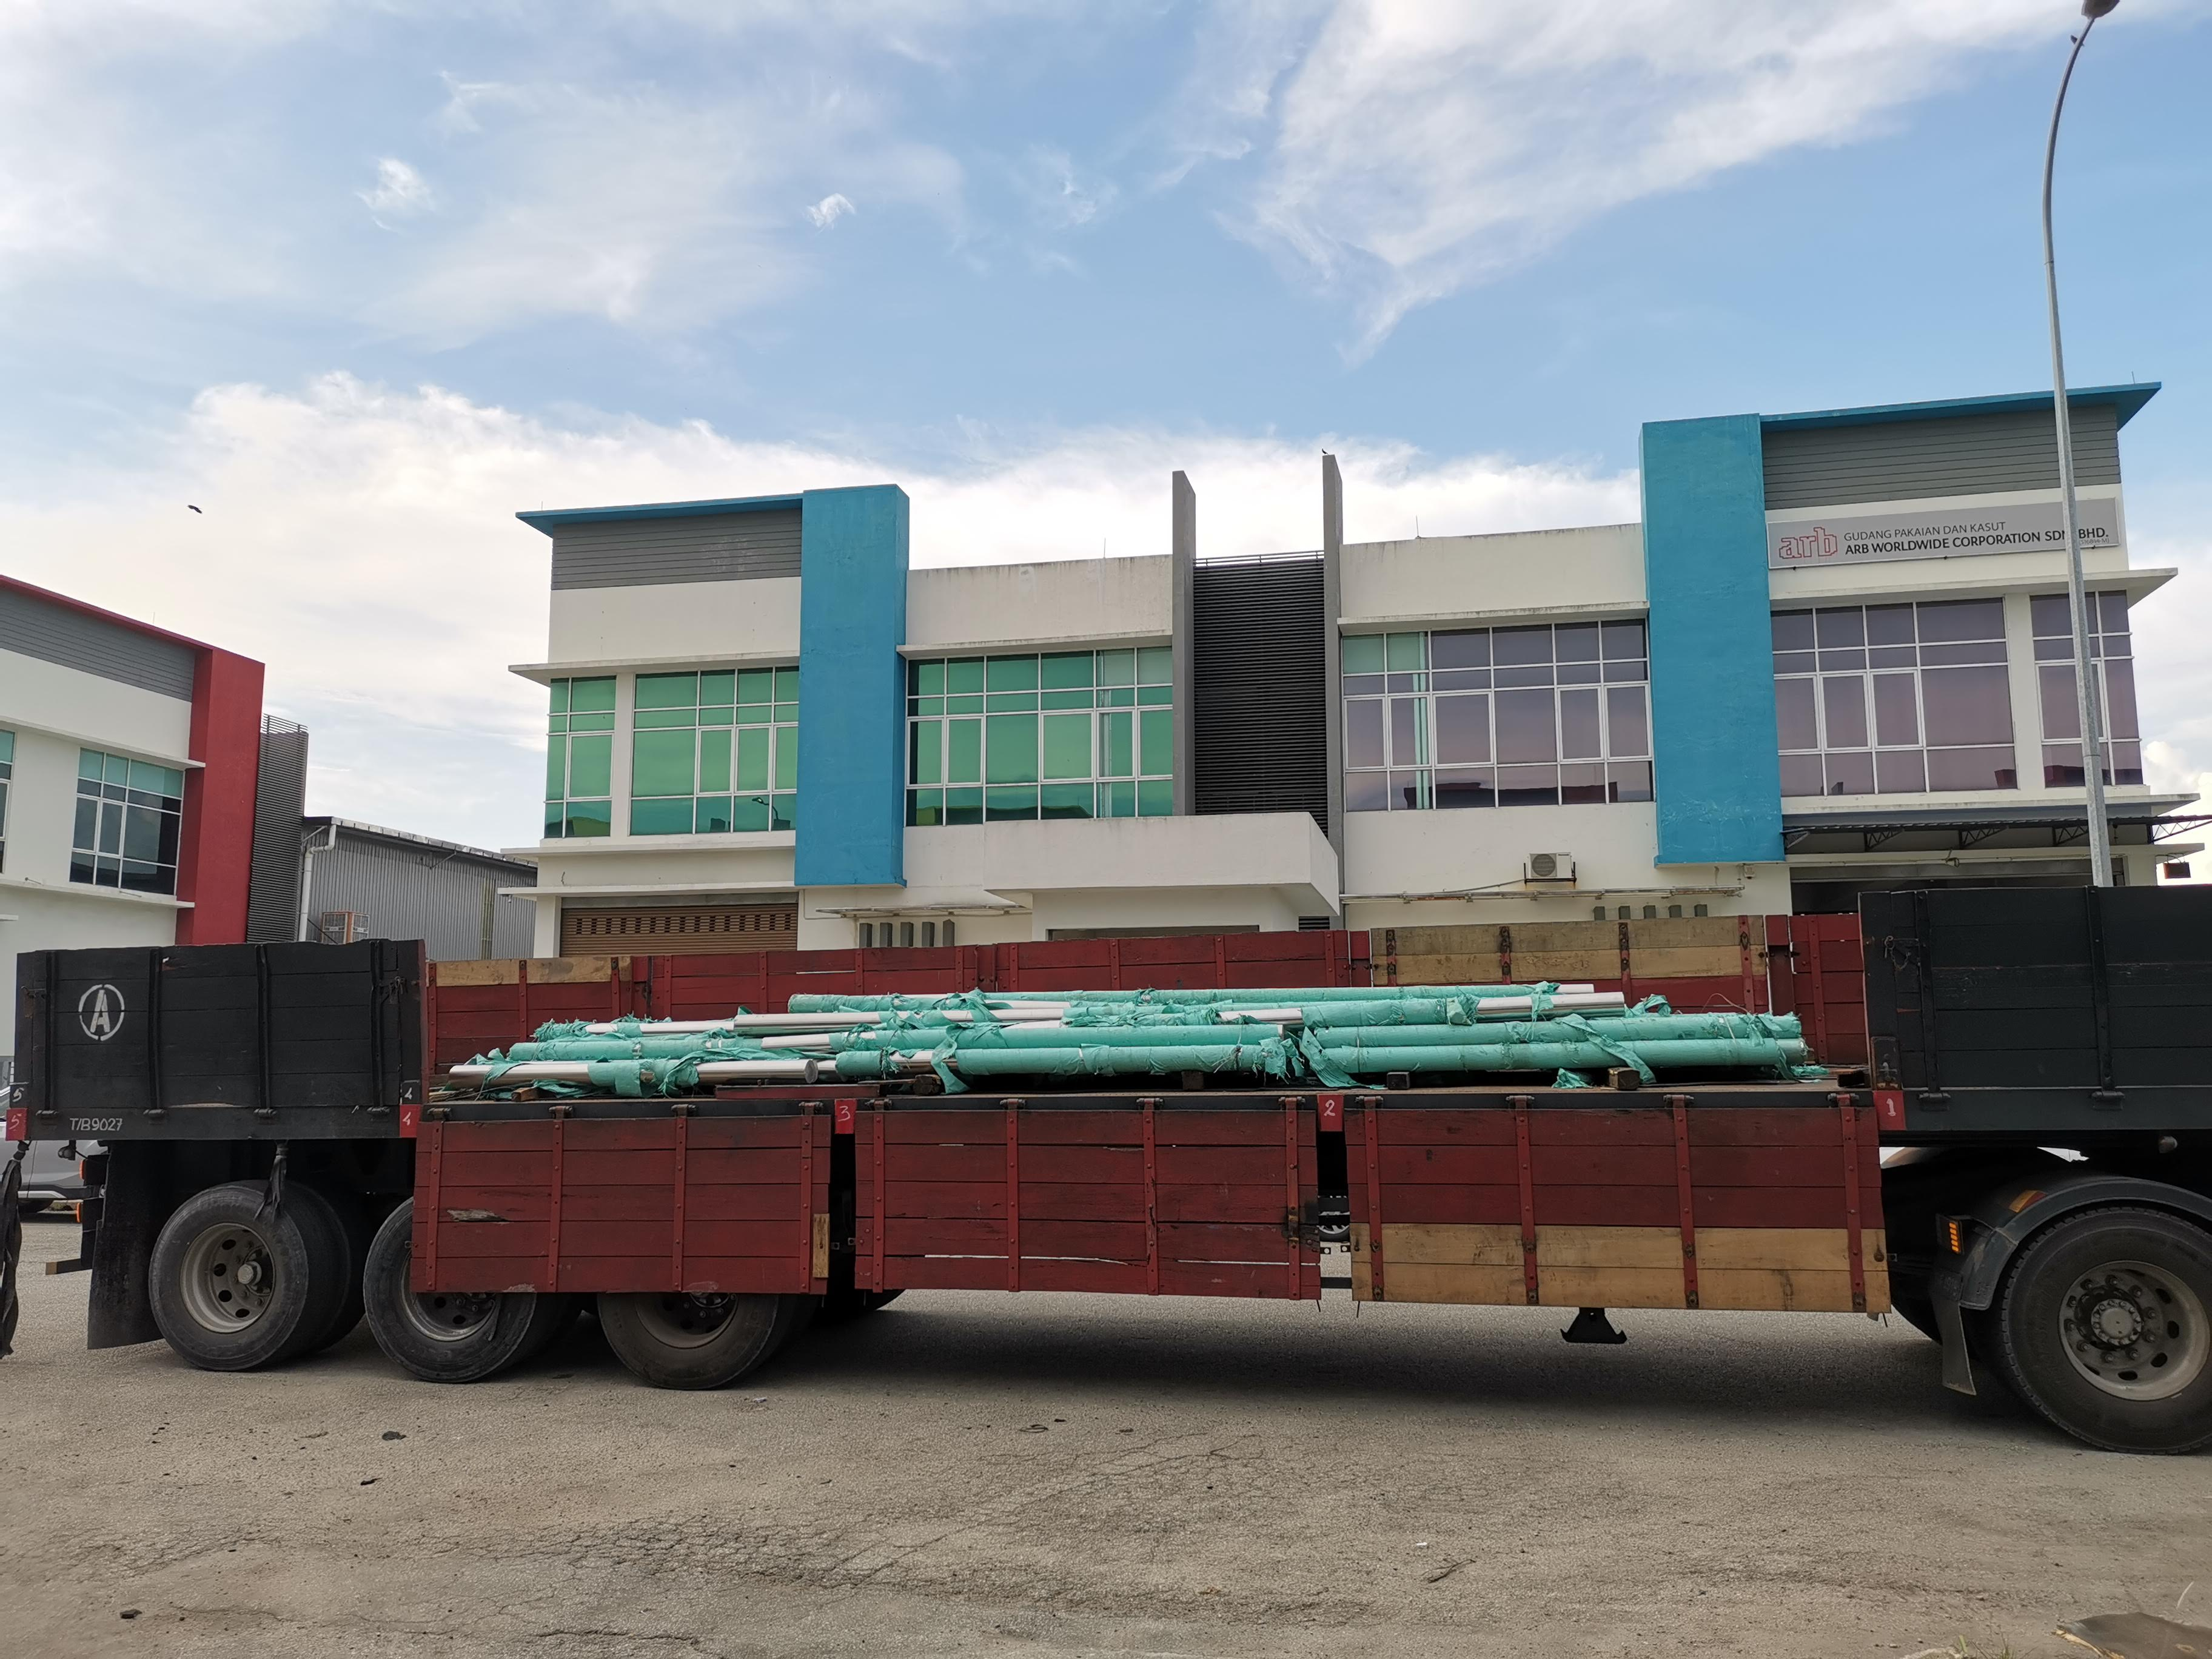 431 stainless steel suppliers